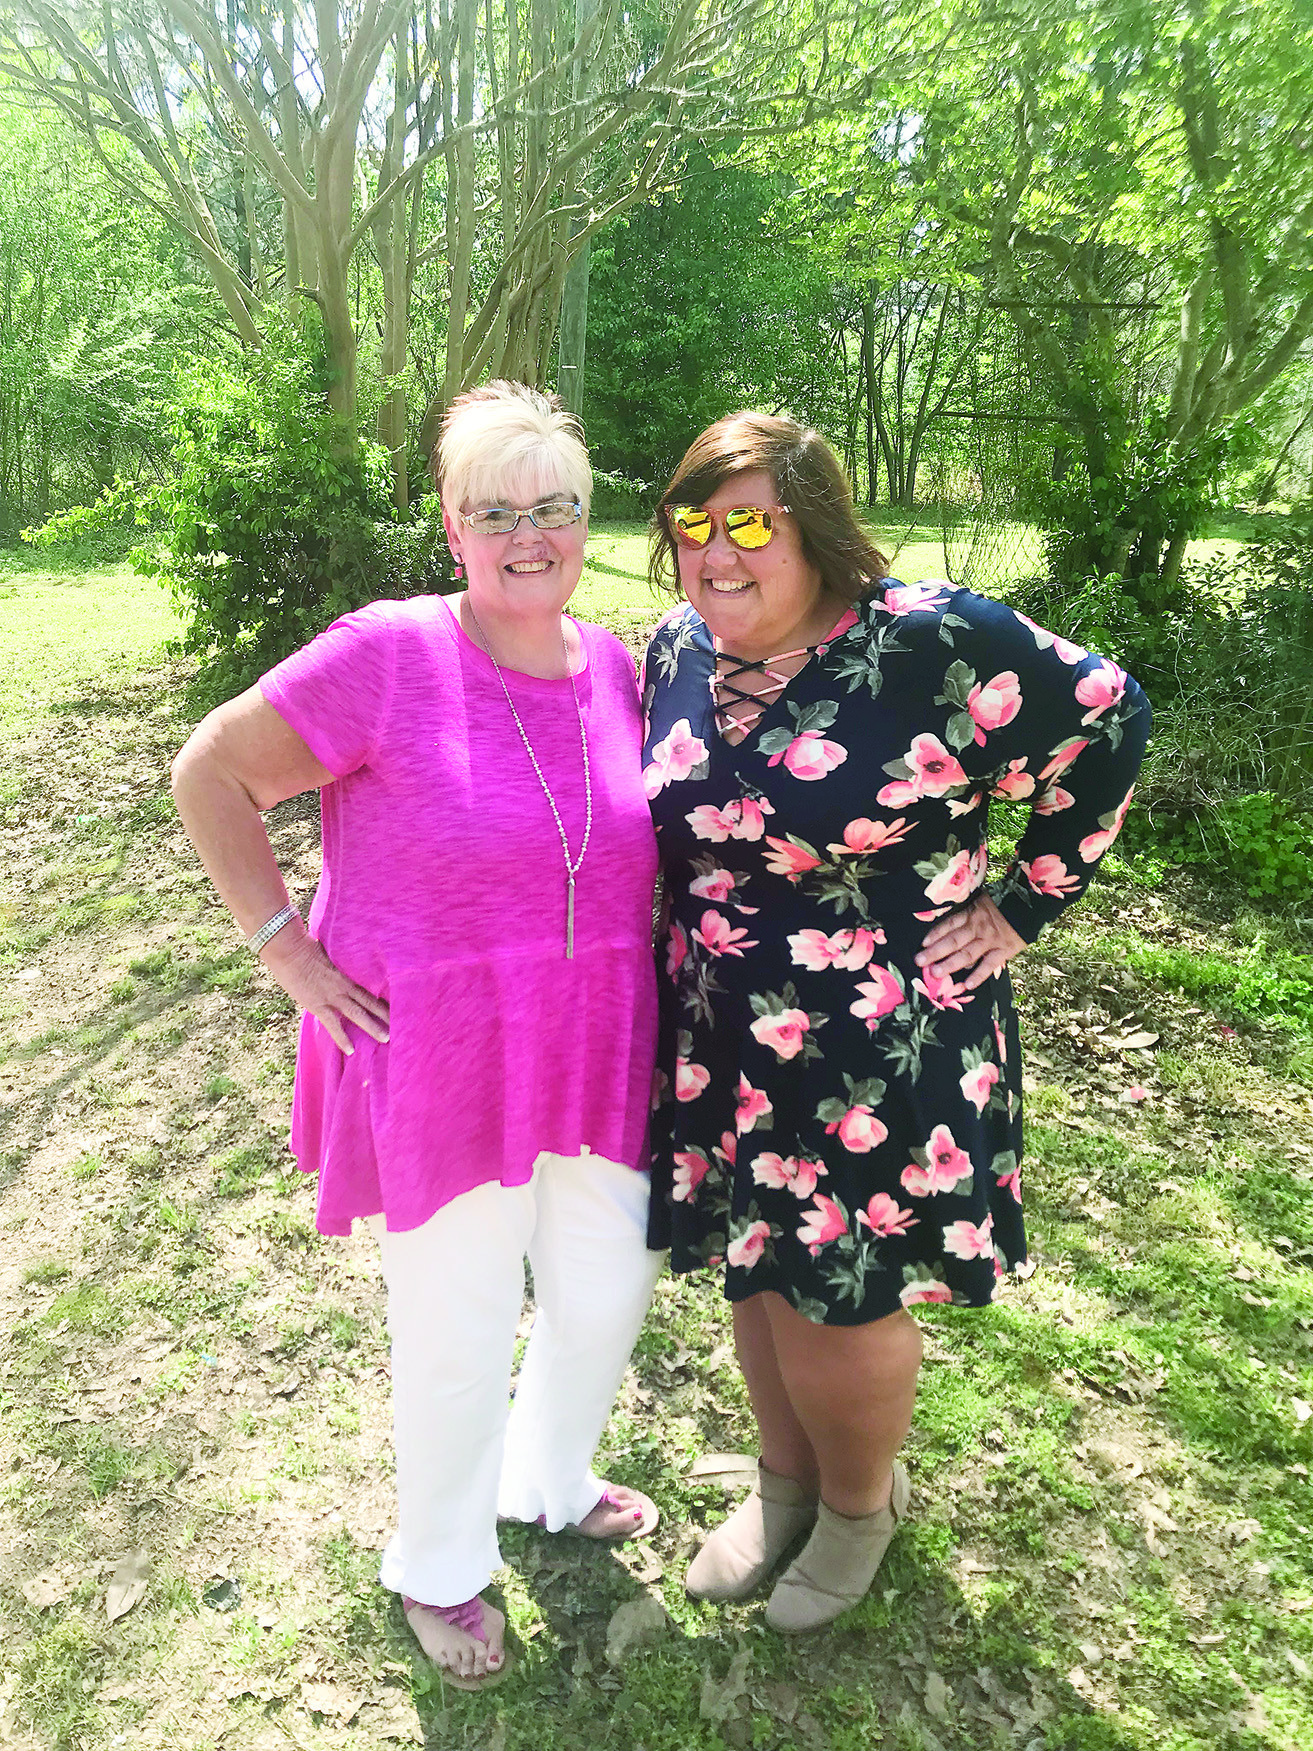 Jennifer Kaufman of Sumiton, at right, and her mom, Shelley Kaufman, have each lost over 100 pounds since adopting a low-carb diet. Jennifer Kaufman's recent weight loss has given her the freedom to try new experiences like hiking and kayaking.